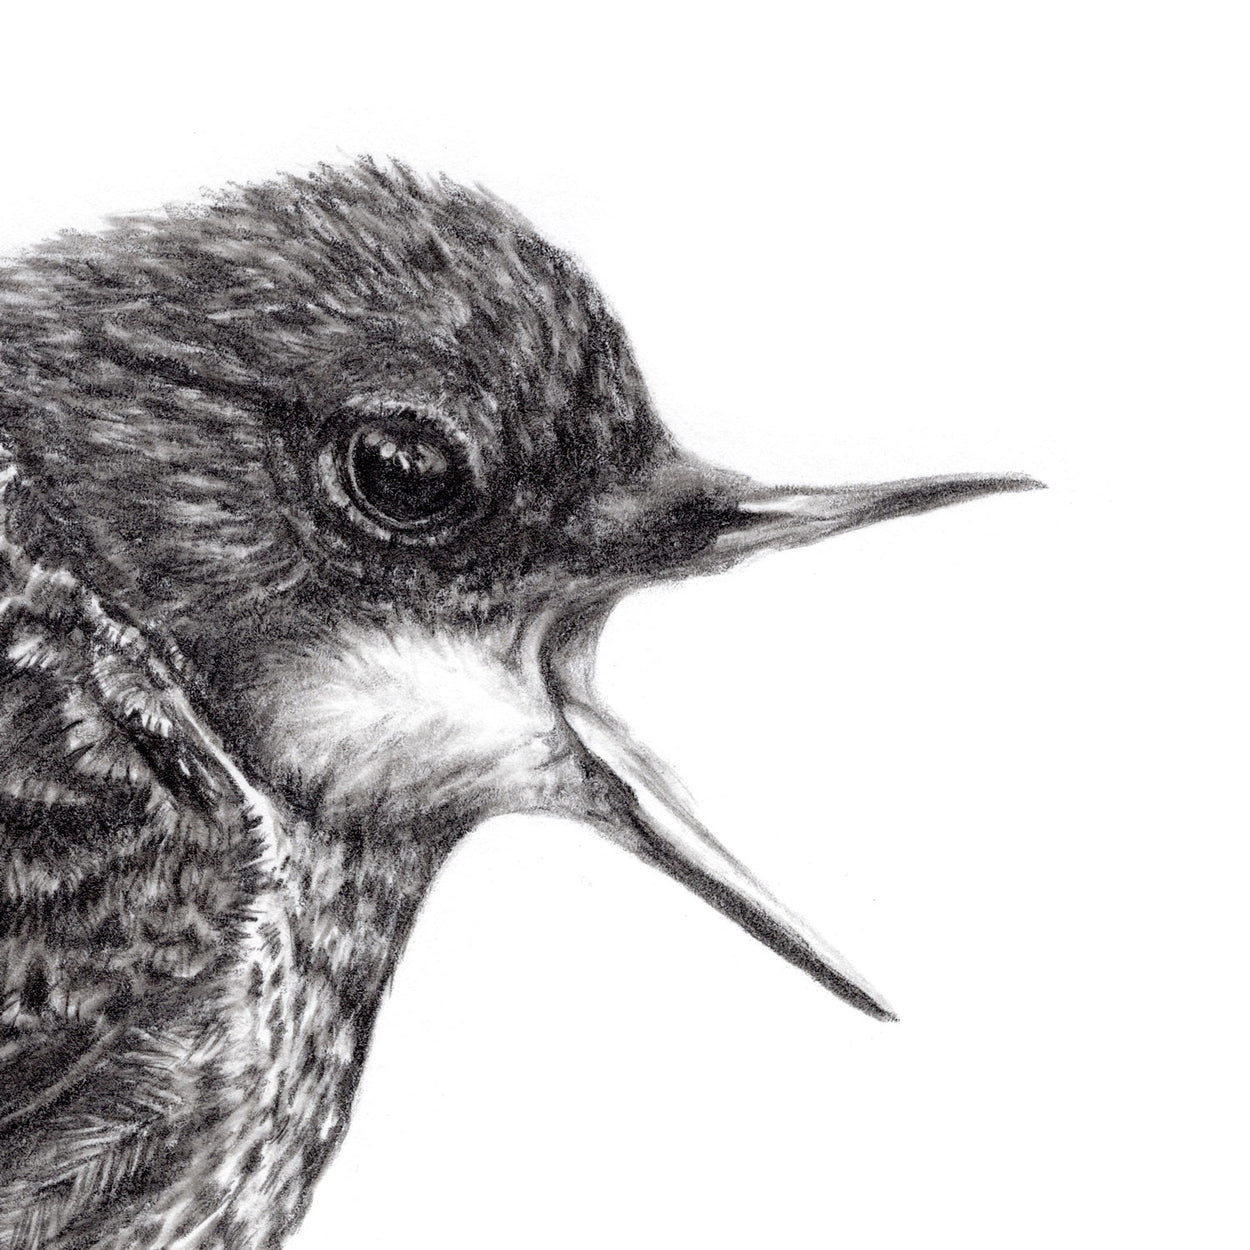 Dipper Drawing Close-up 1 - The Thriving Wild